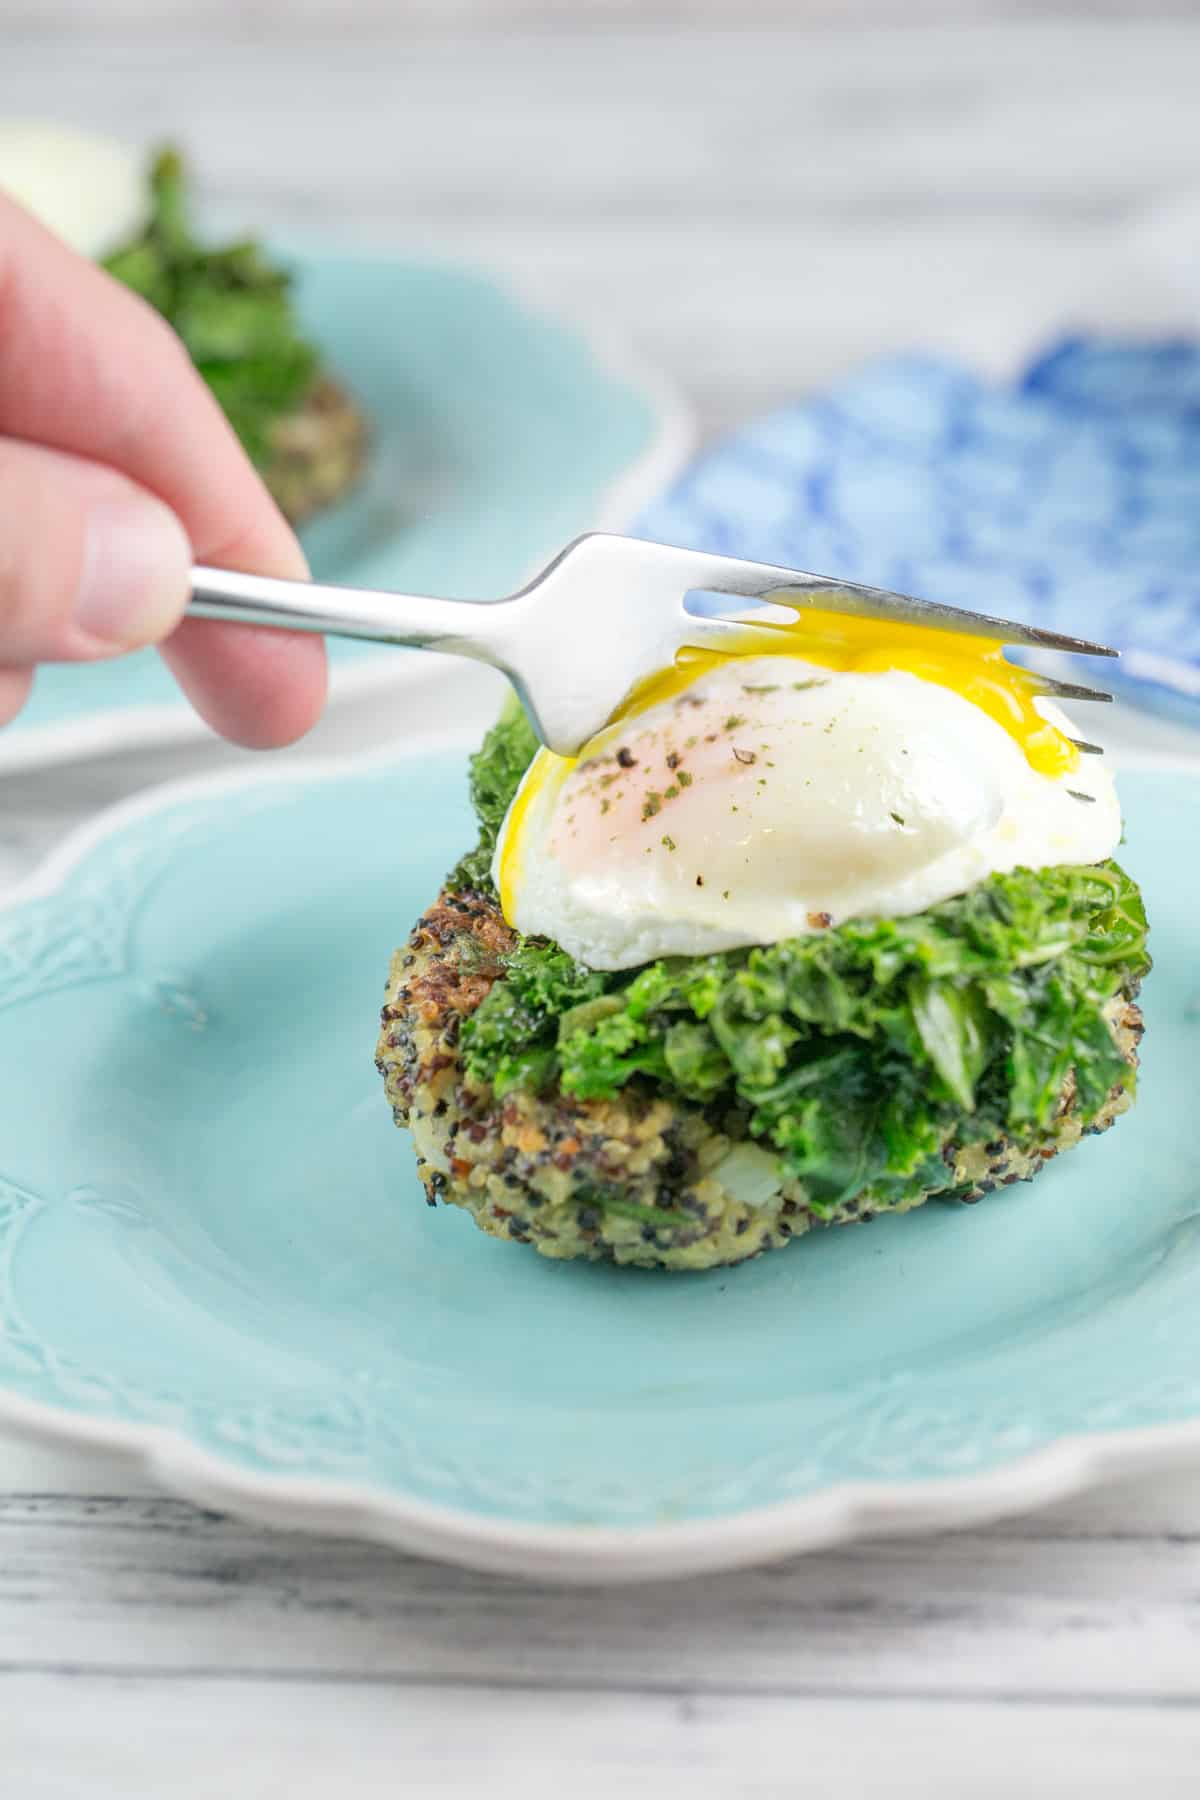 side view of a quinoa cake topped with a poached egg with a fork breaking open the egg